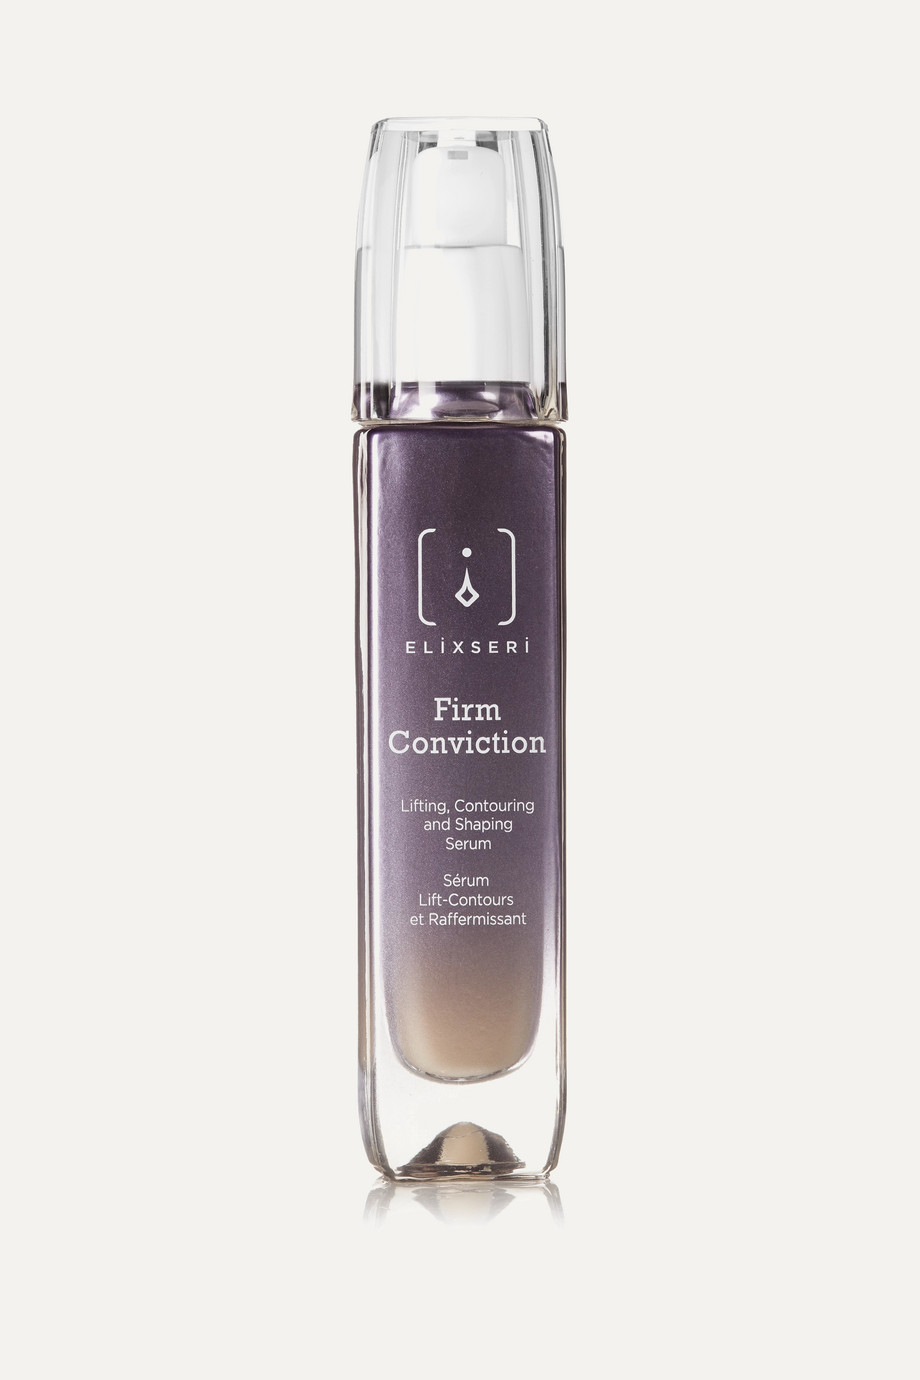 ELIXSERI Firm Conviction - Lifting, Contouring and Shaping Serum, 30ml